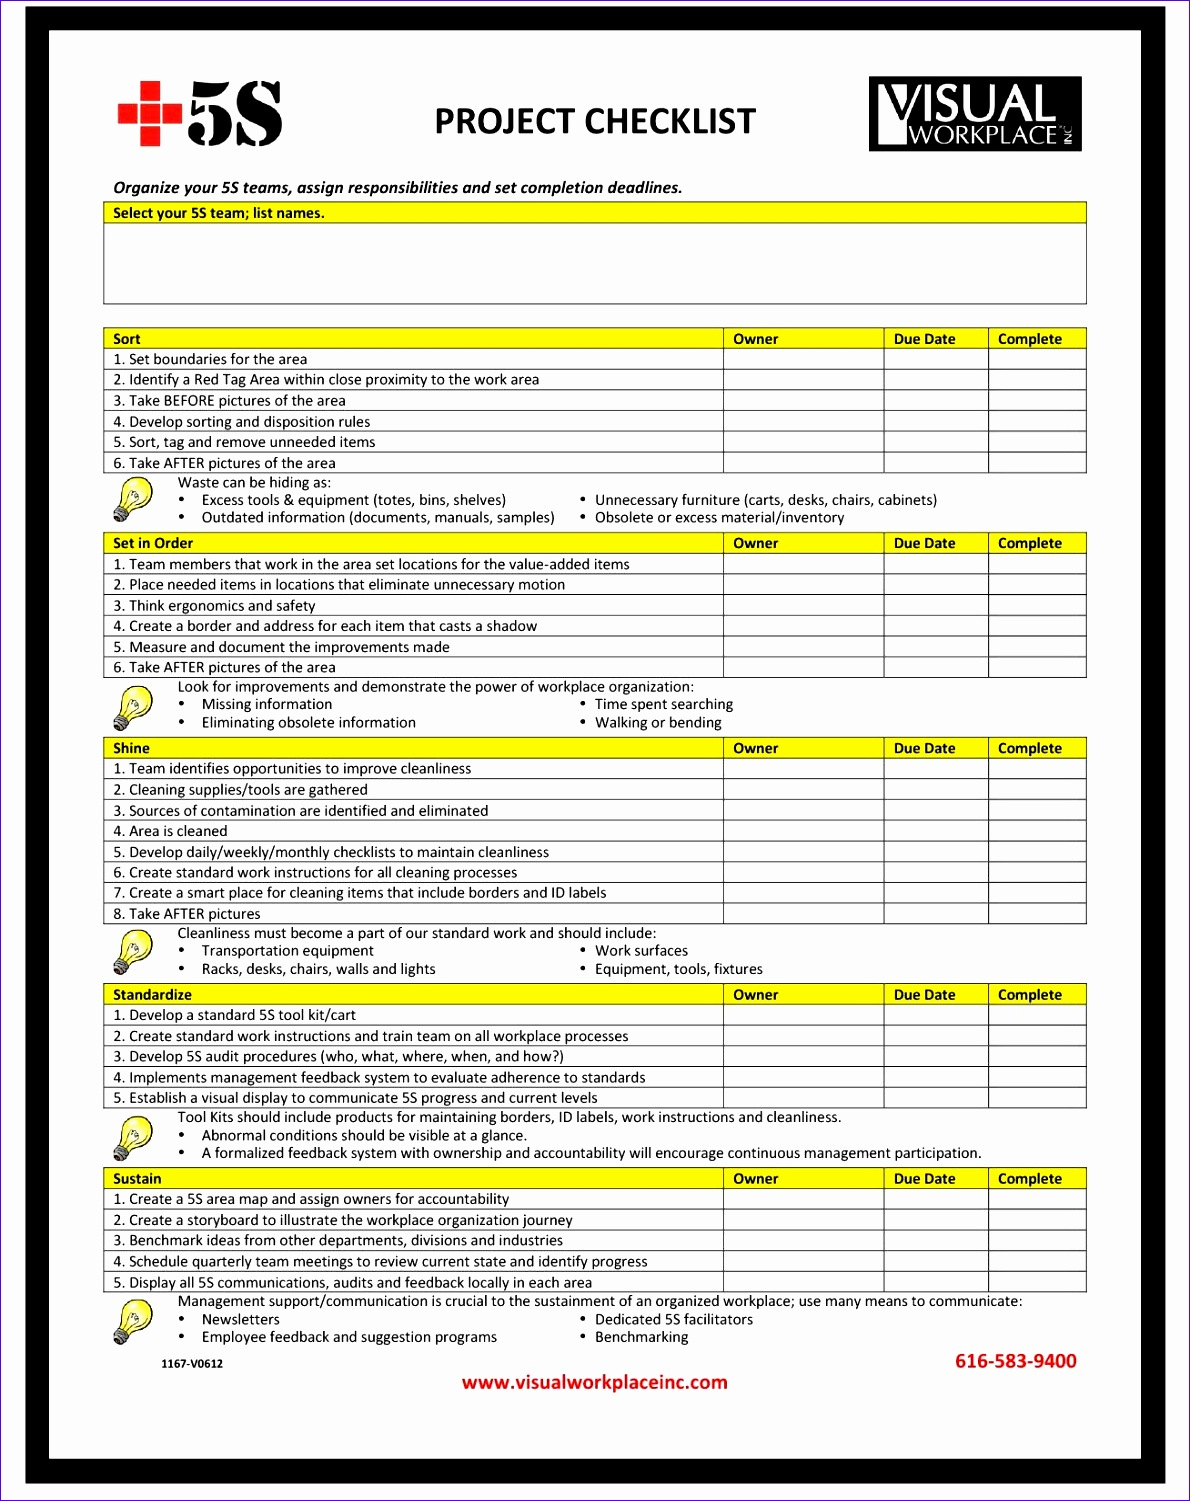 project checklist template 11901501